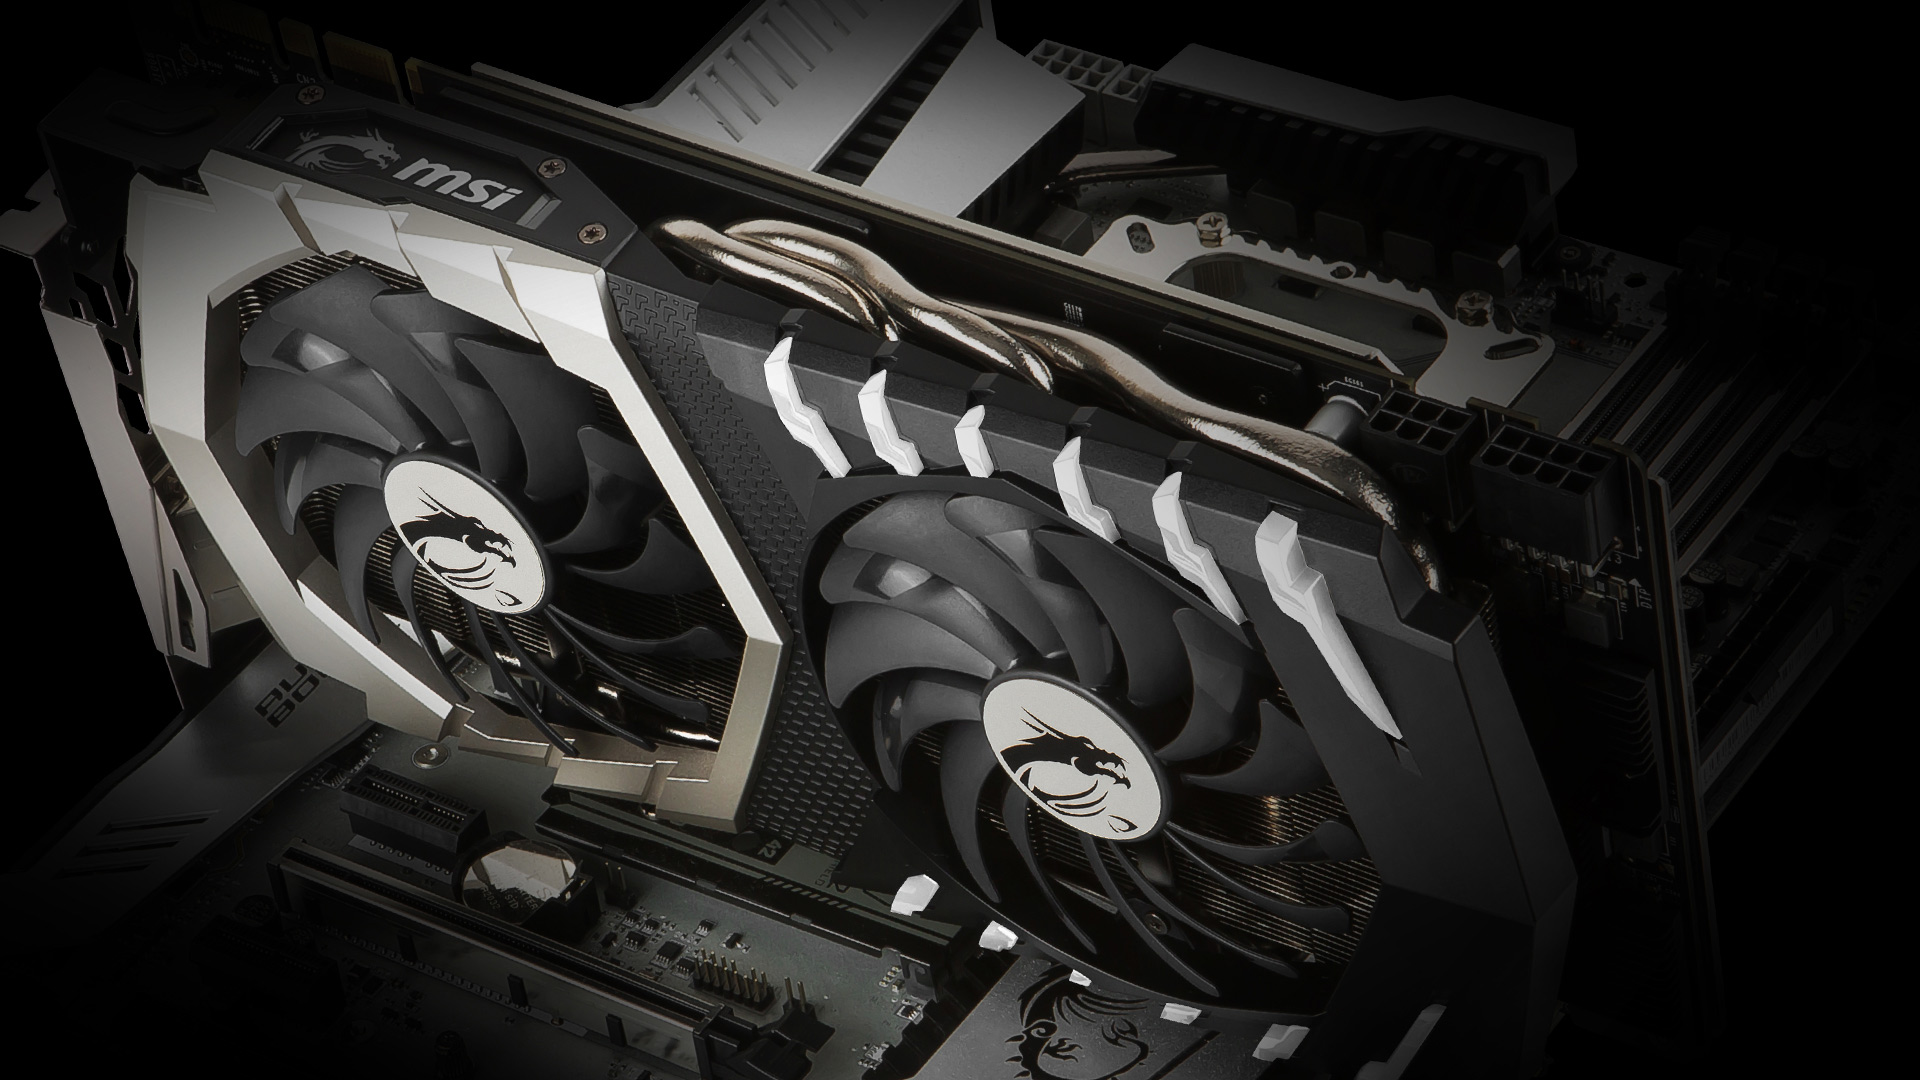 GeForce GTX 1070 Ti Titanium 8G | Graphics card - The world